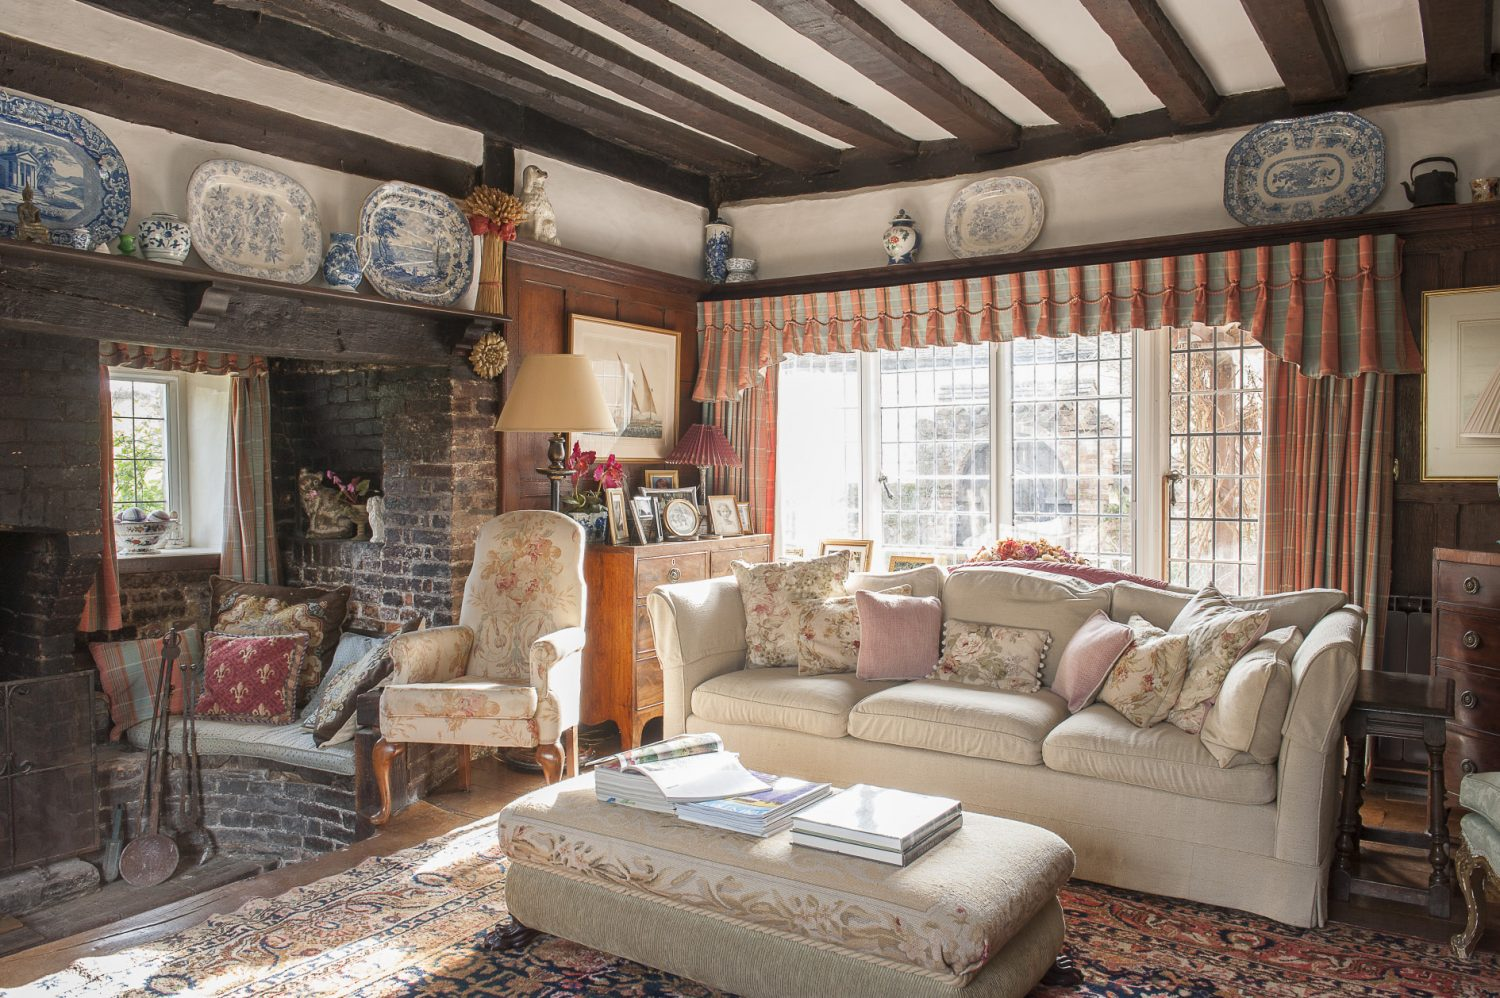 """The front reception room's sunken fireplace was apparently the only warm place to sit. """"My theory is, that the man who did all the work in the 1930s raised the floor – making the fireplace appear sunken,"""" says Jane"""